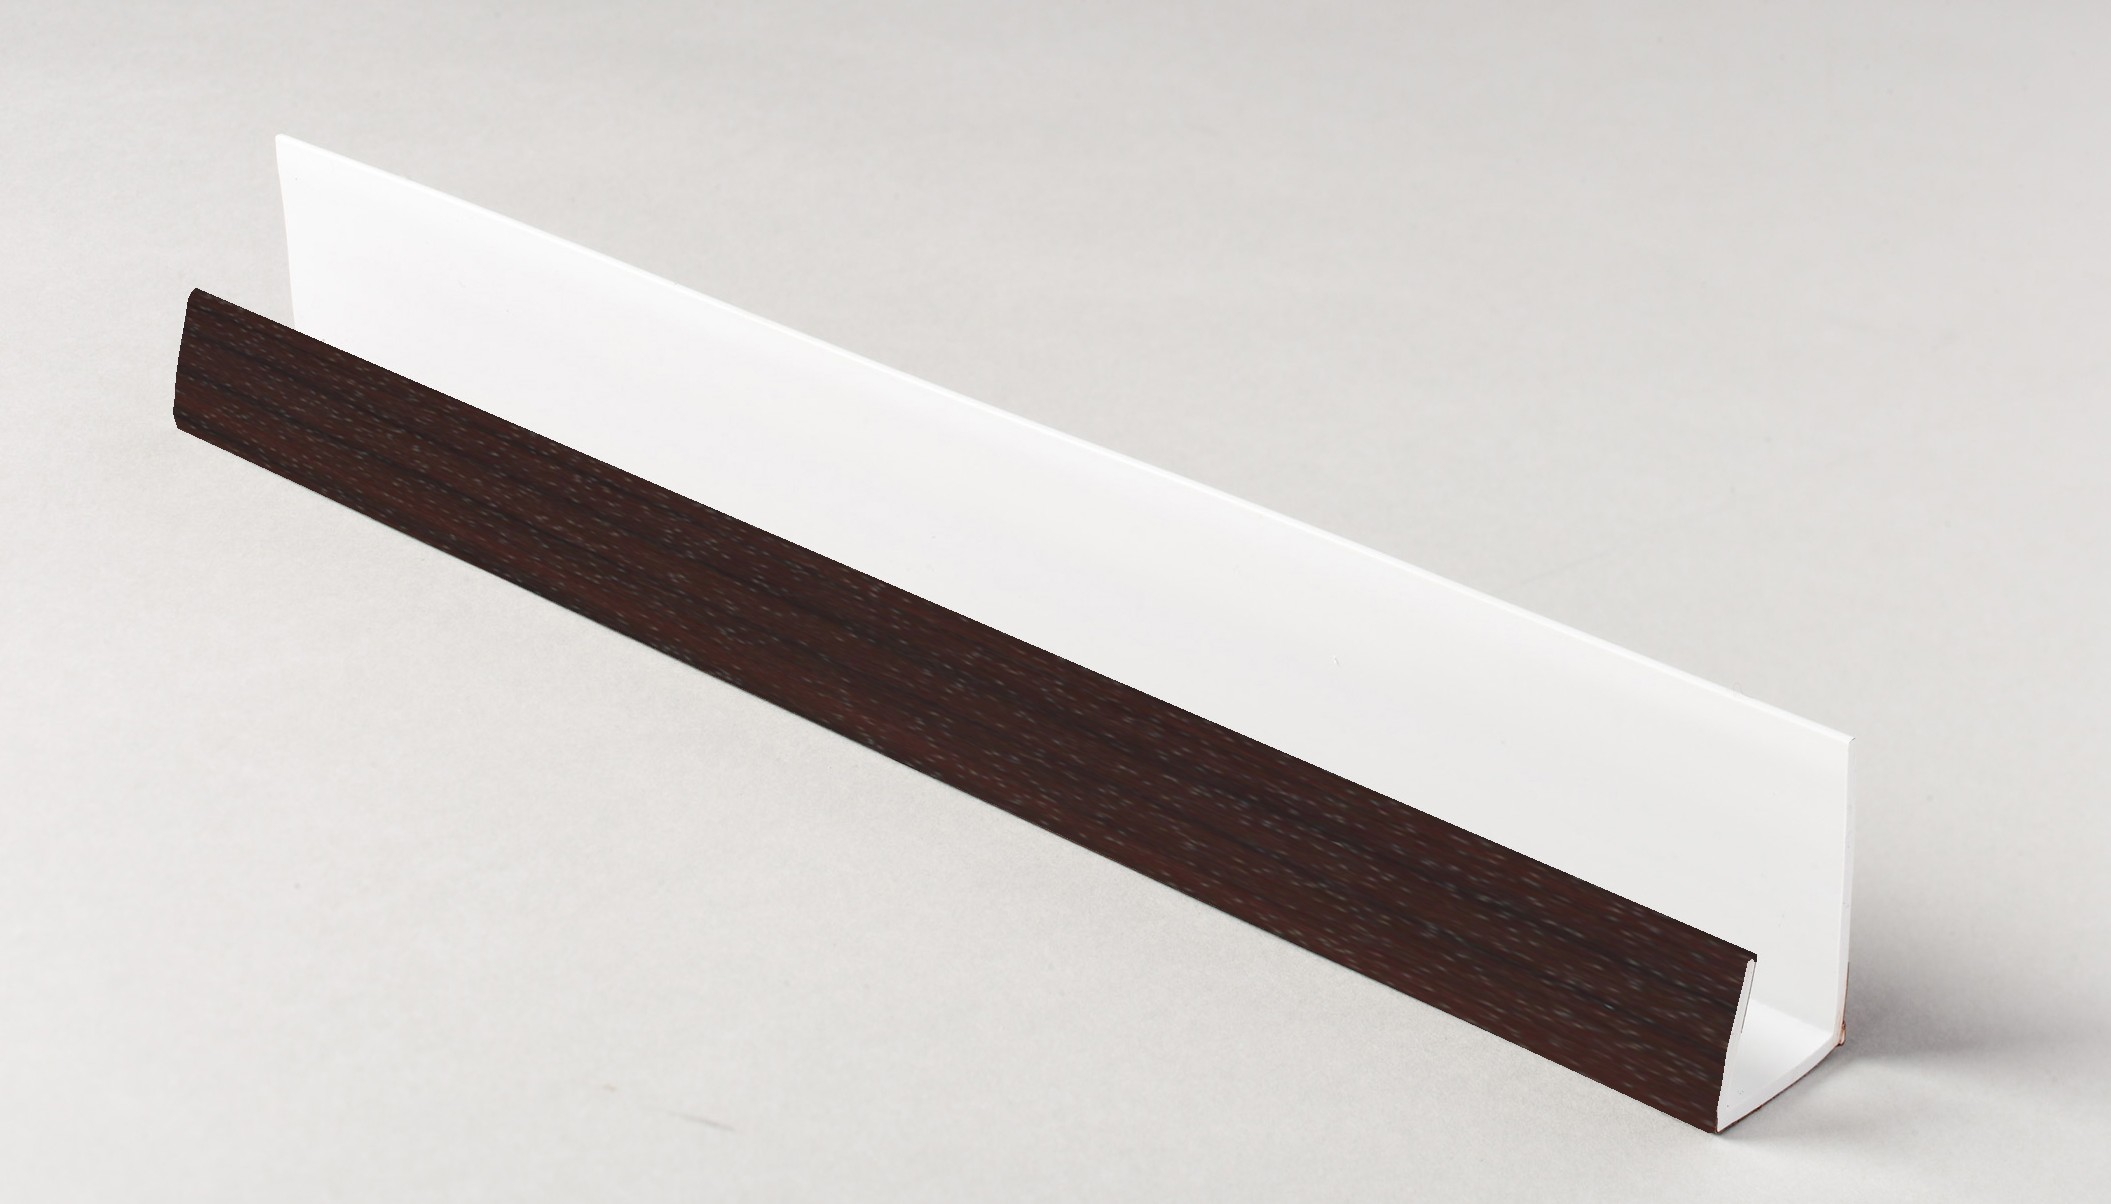 Edge Channel 5m Rosewood Rosewood Cladding Trims